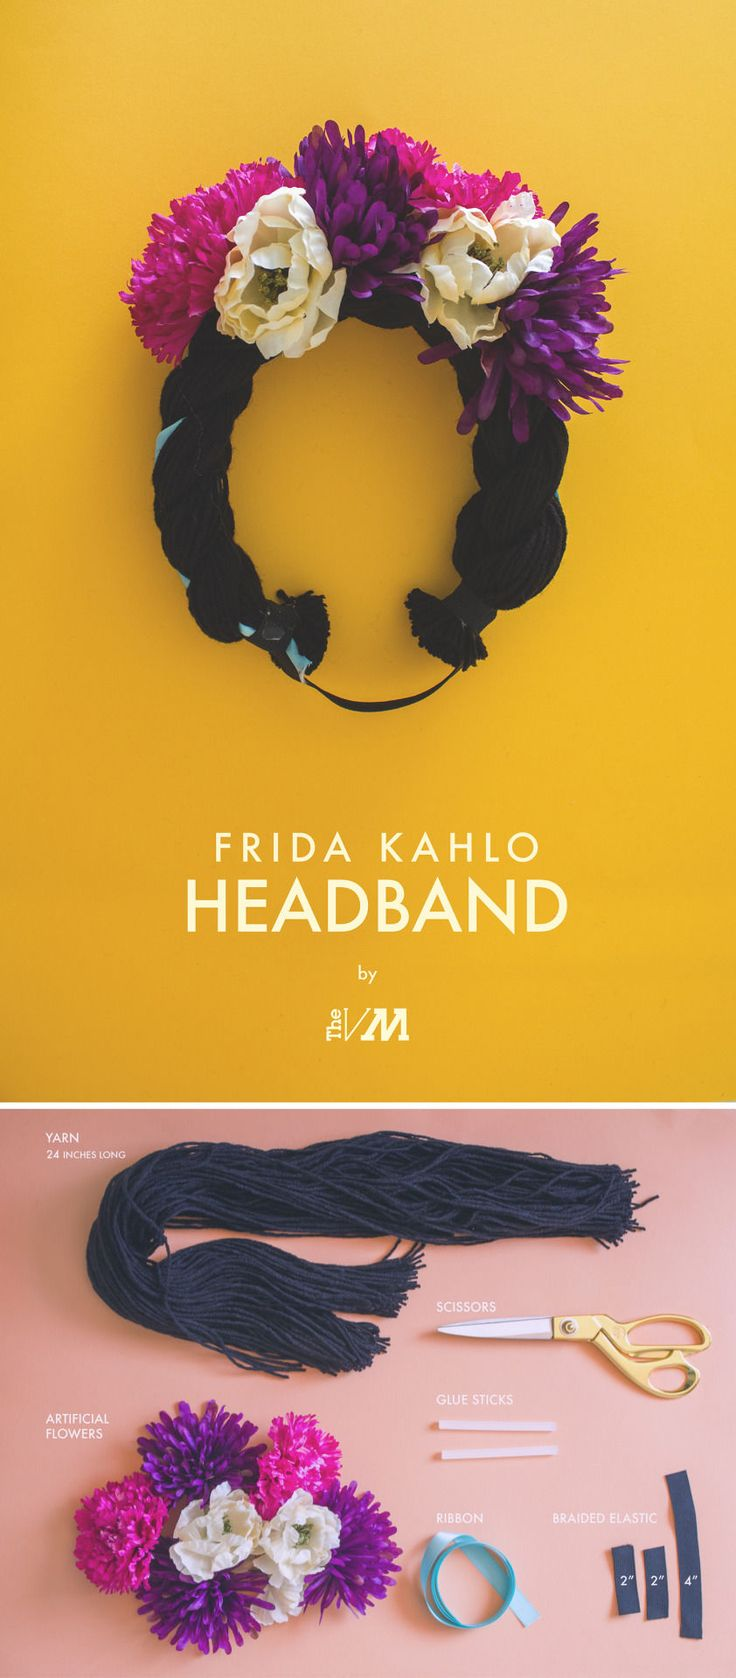 Frida Kahlo Headband